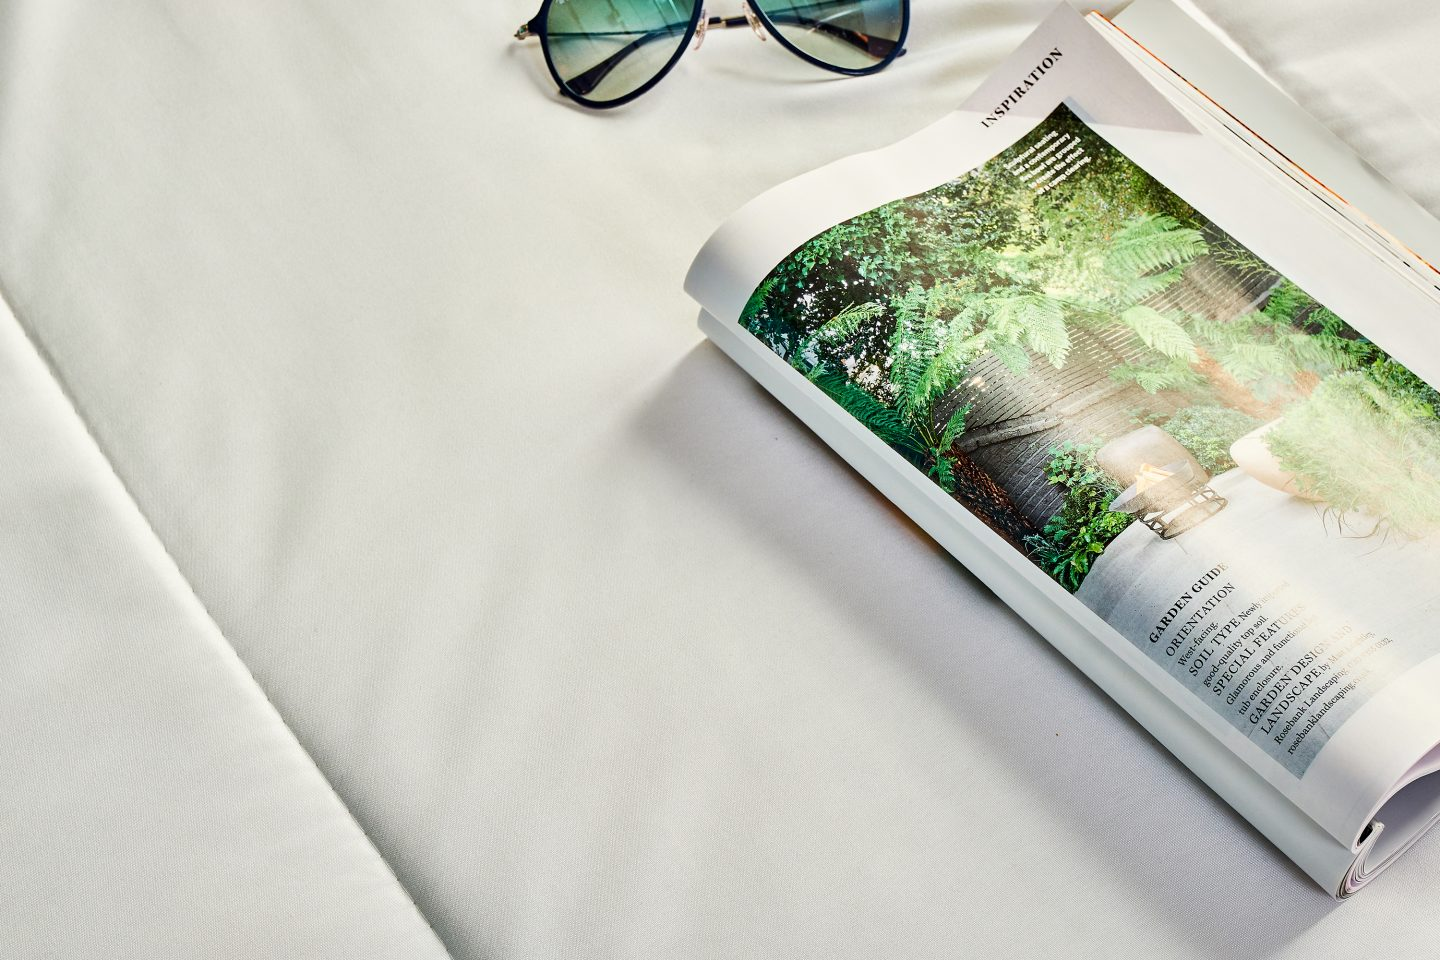 A magazine and sun glasses on a duvet